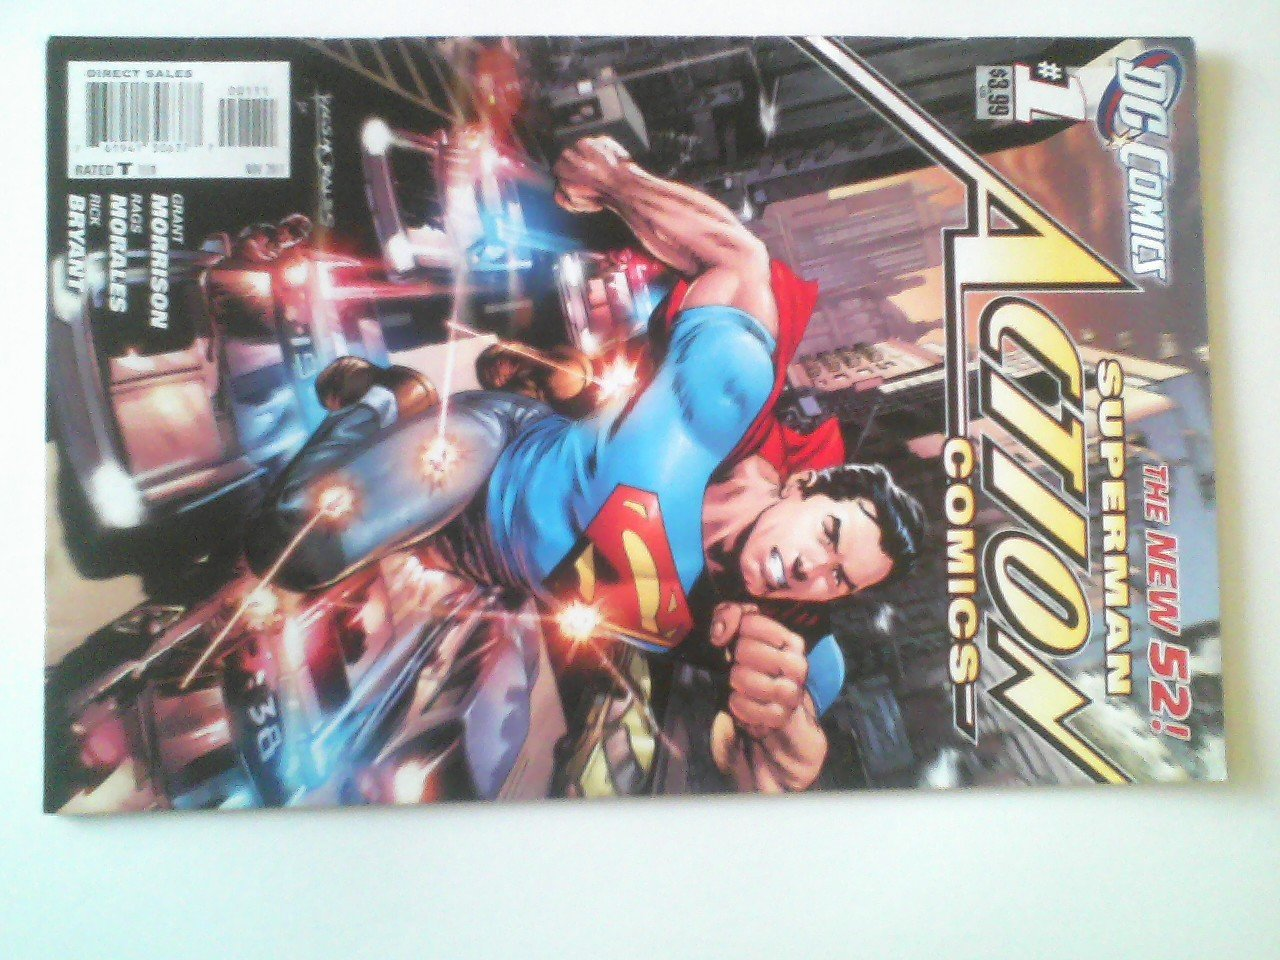 Action Comics #1 ,Action Comics #2 The new 52 The adventures of superman #0